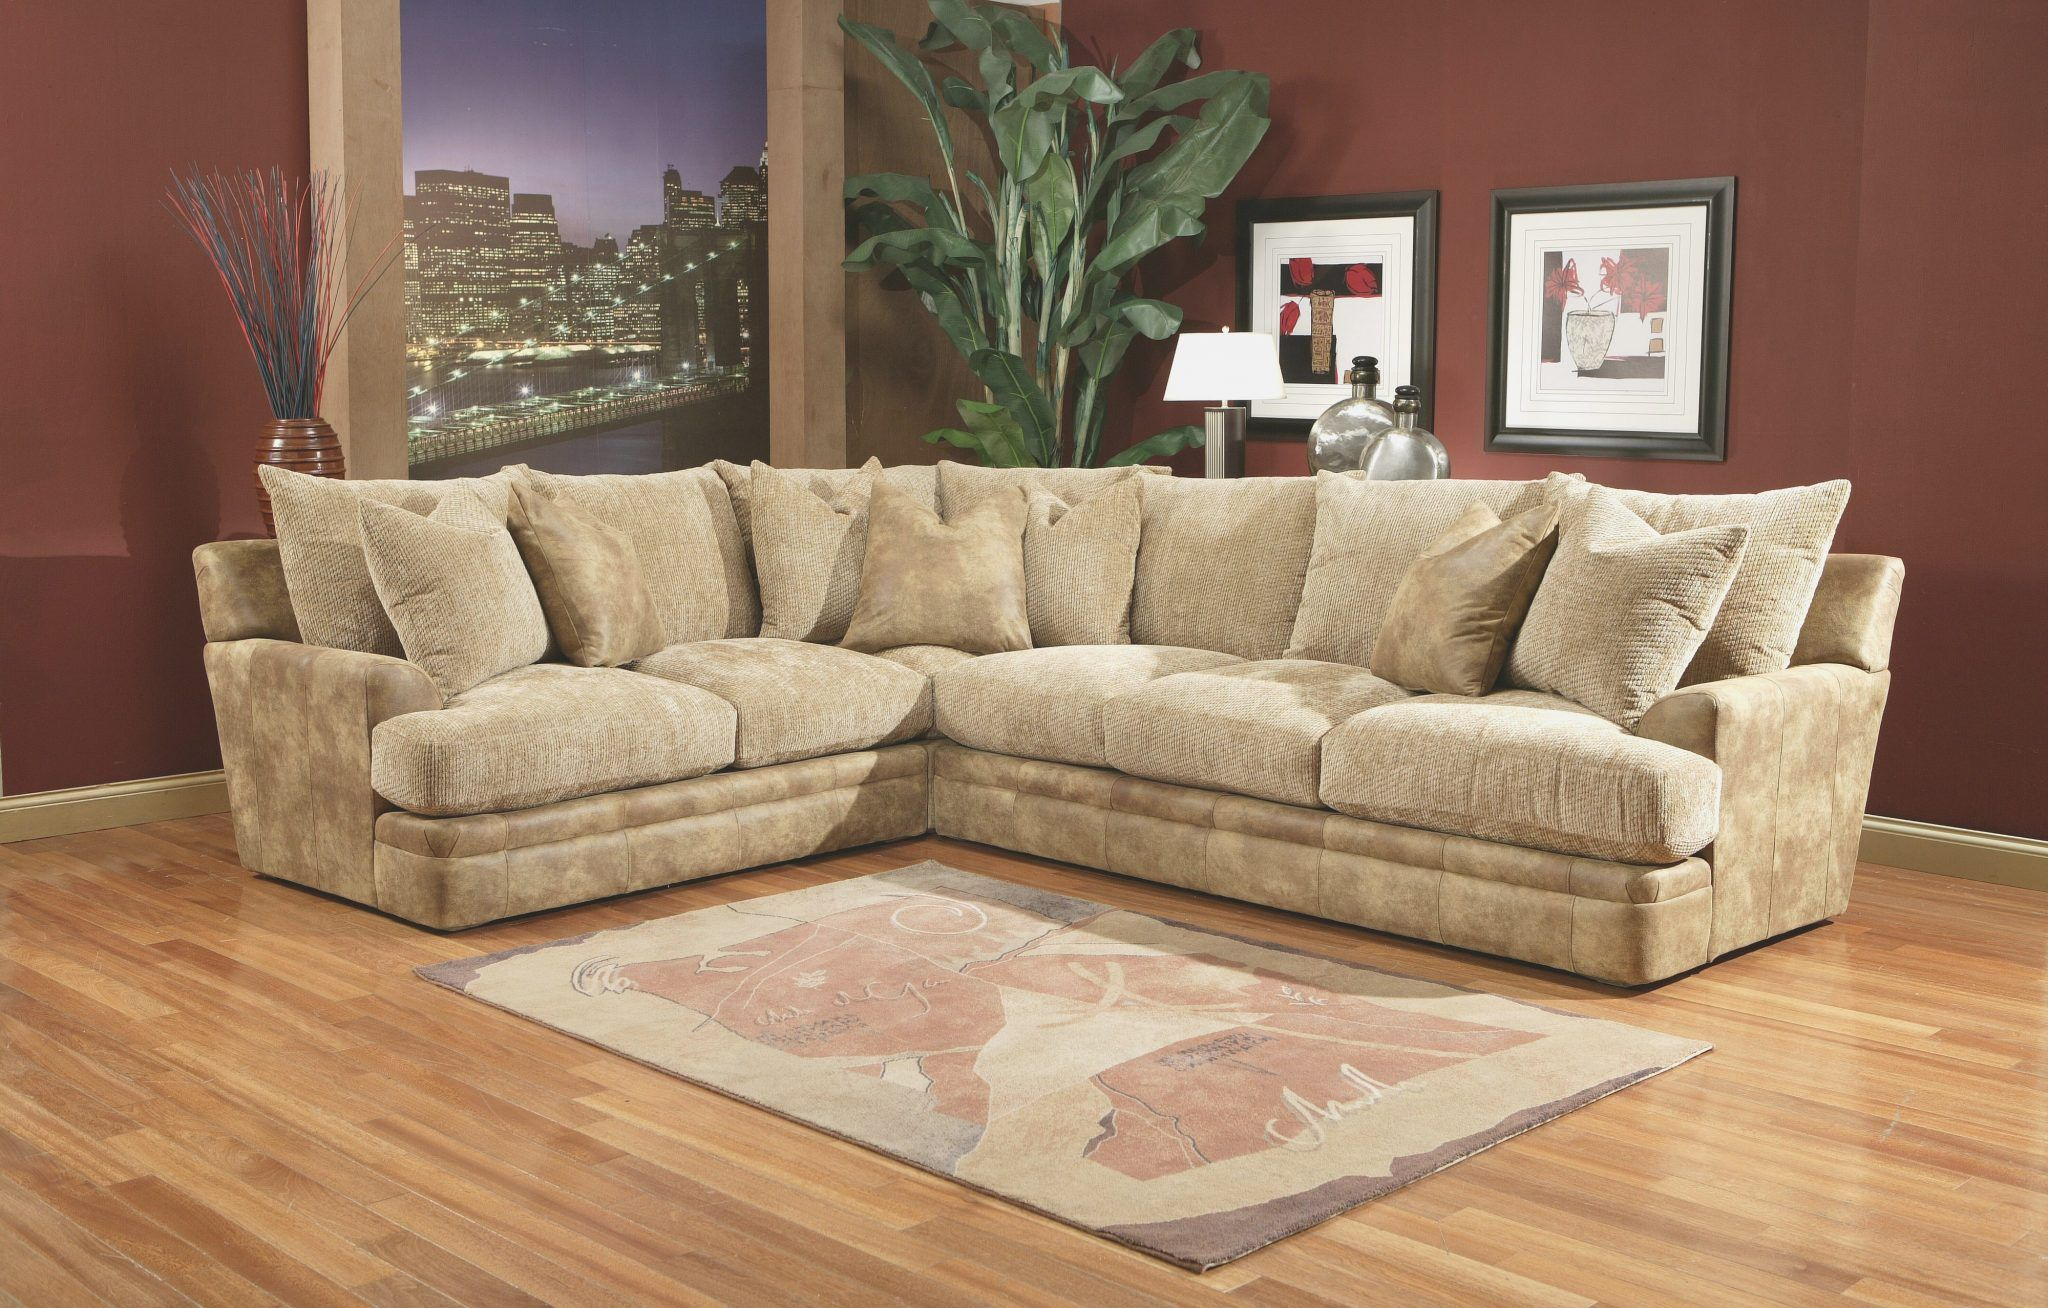 Apartment Size Sectional Sofas Apartment Size Curved Sectional